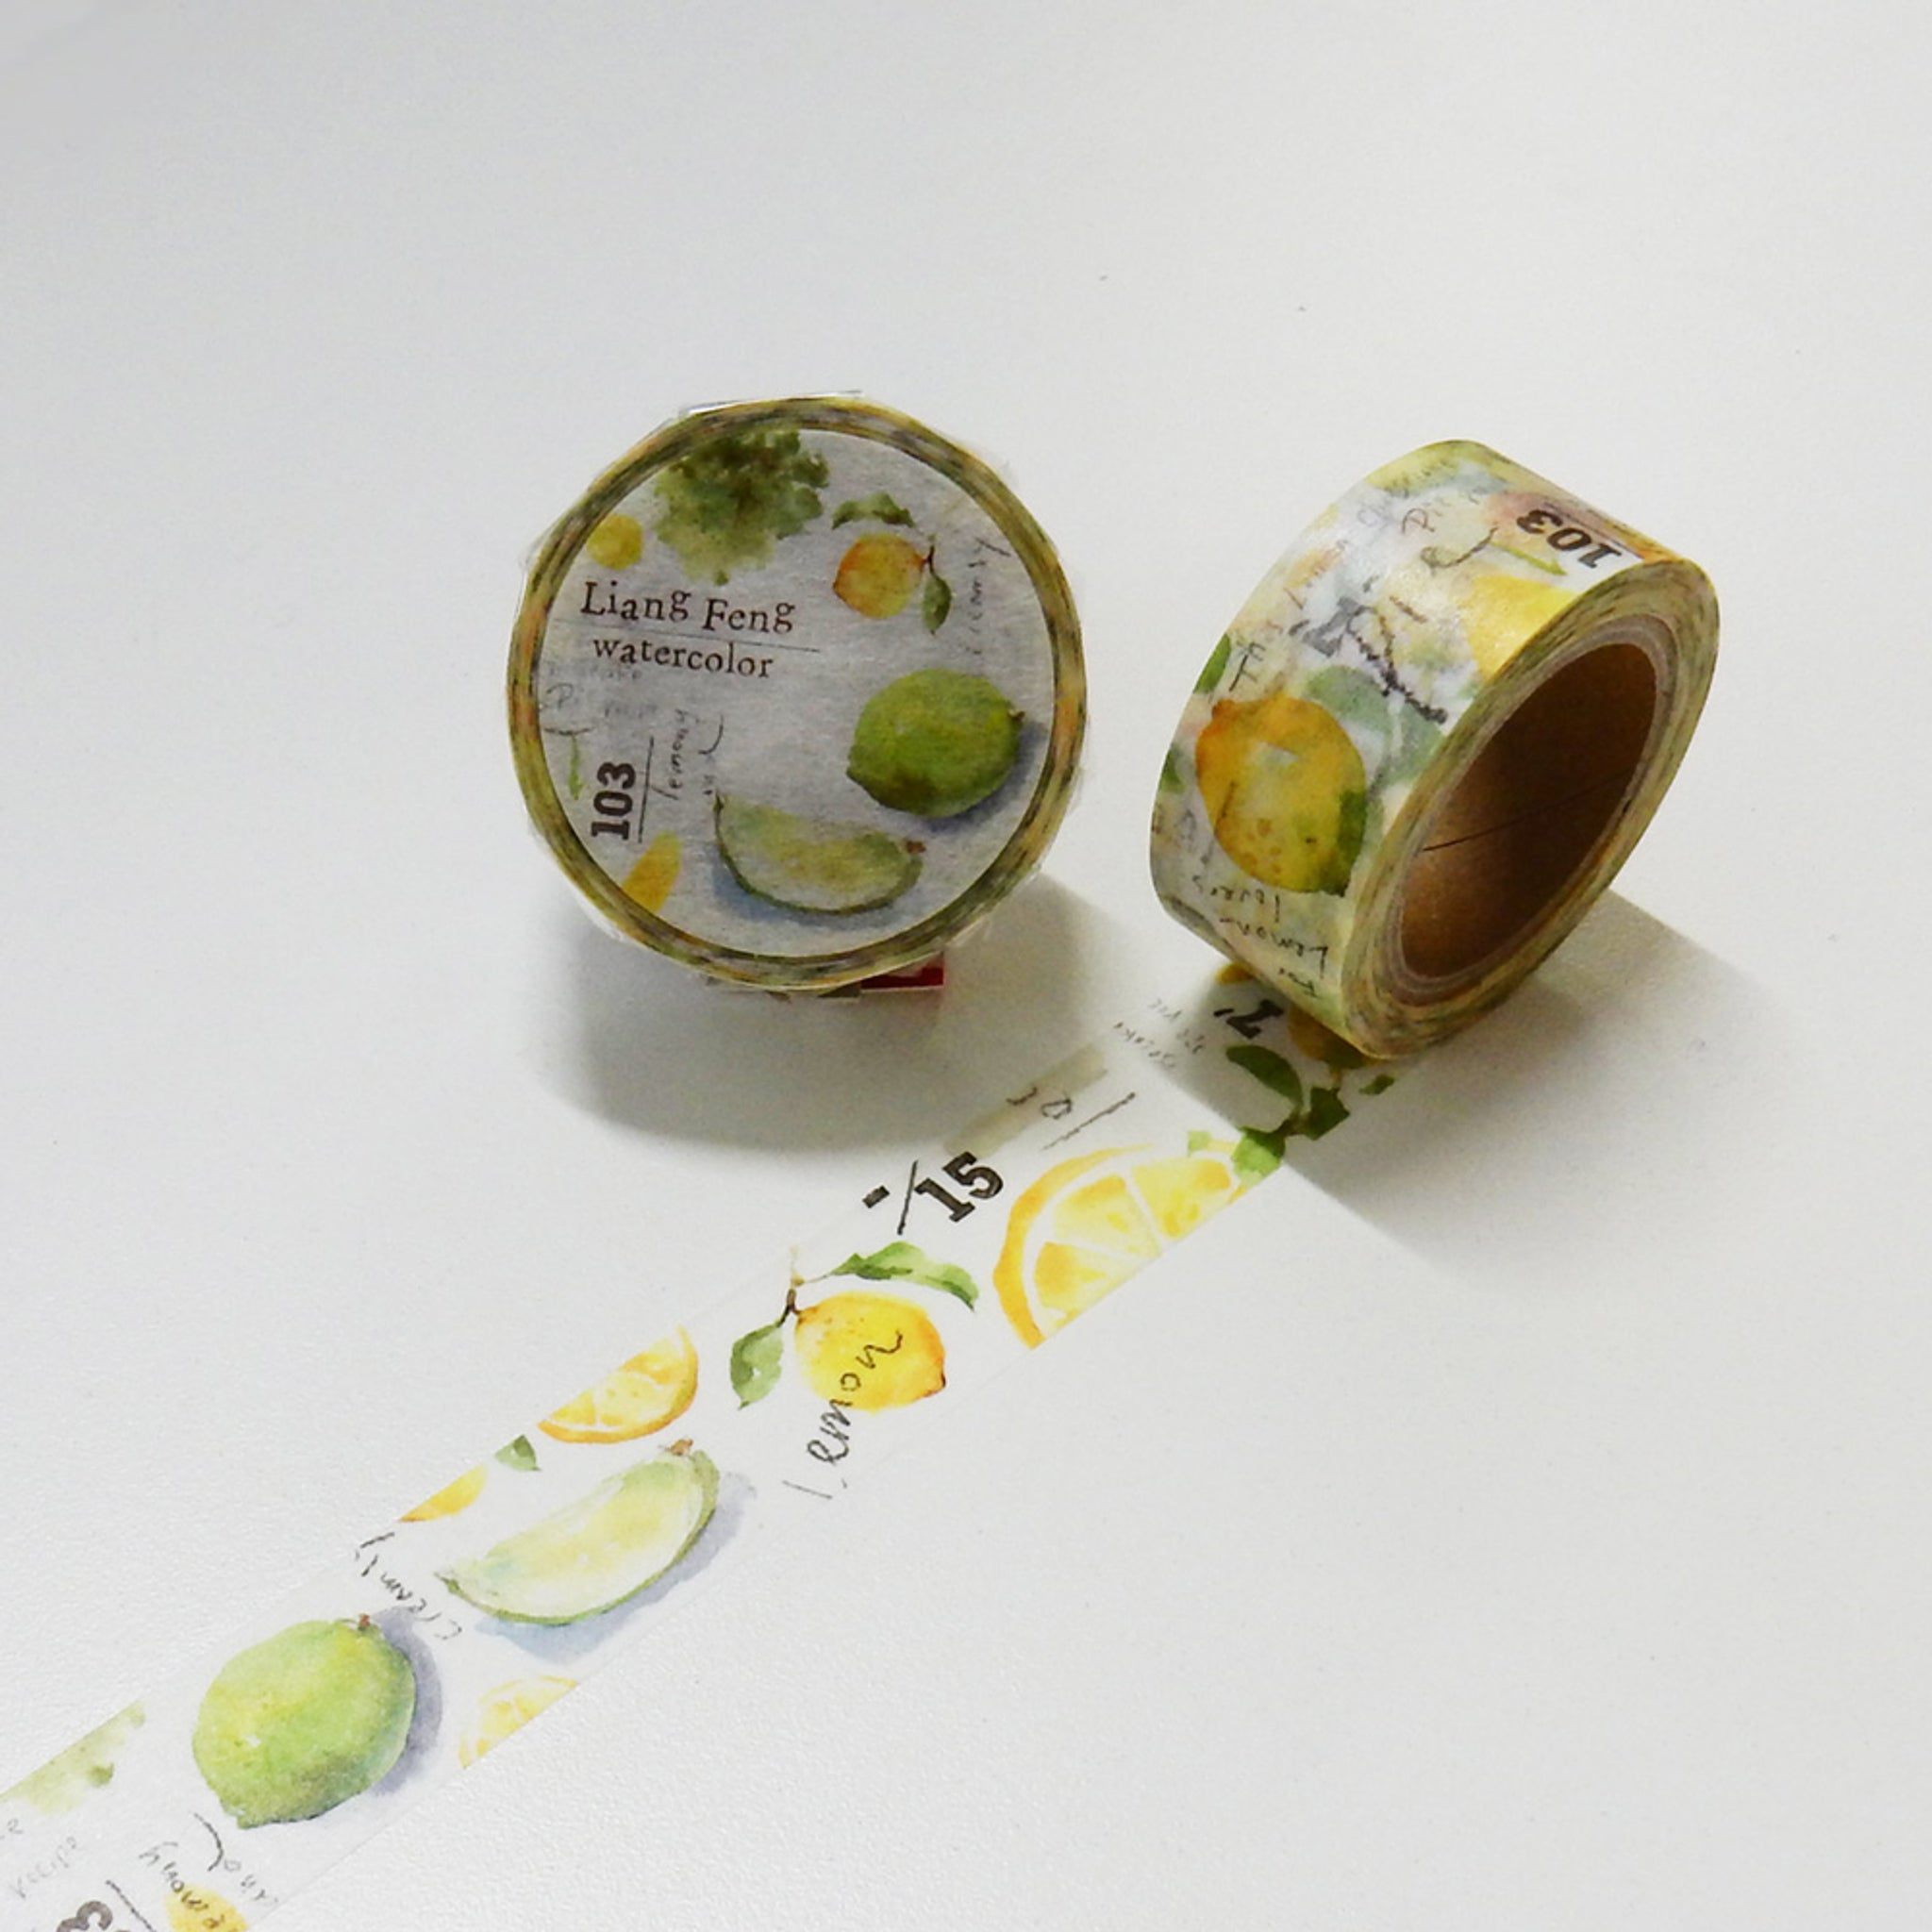 Round Top x Liang Feng Lemon Sicily (Die-Cut) Watercolor Washi Tape